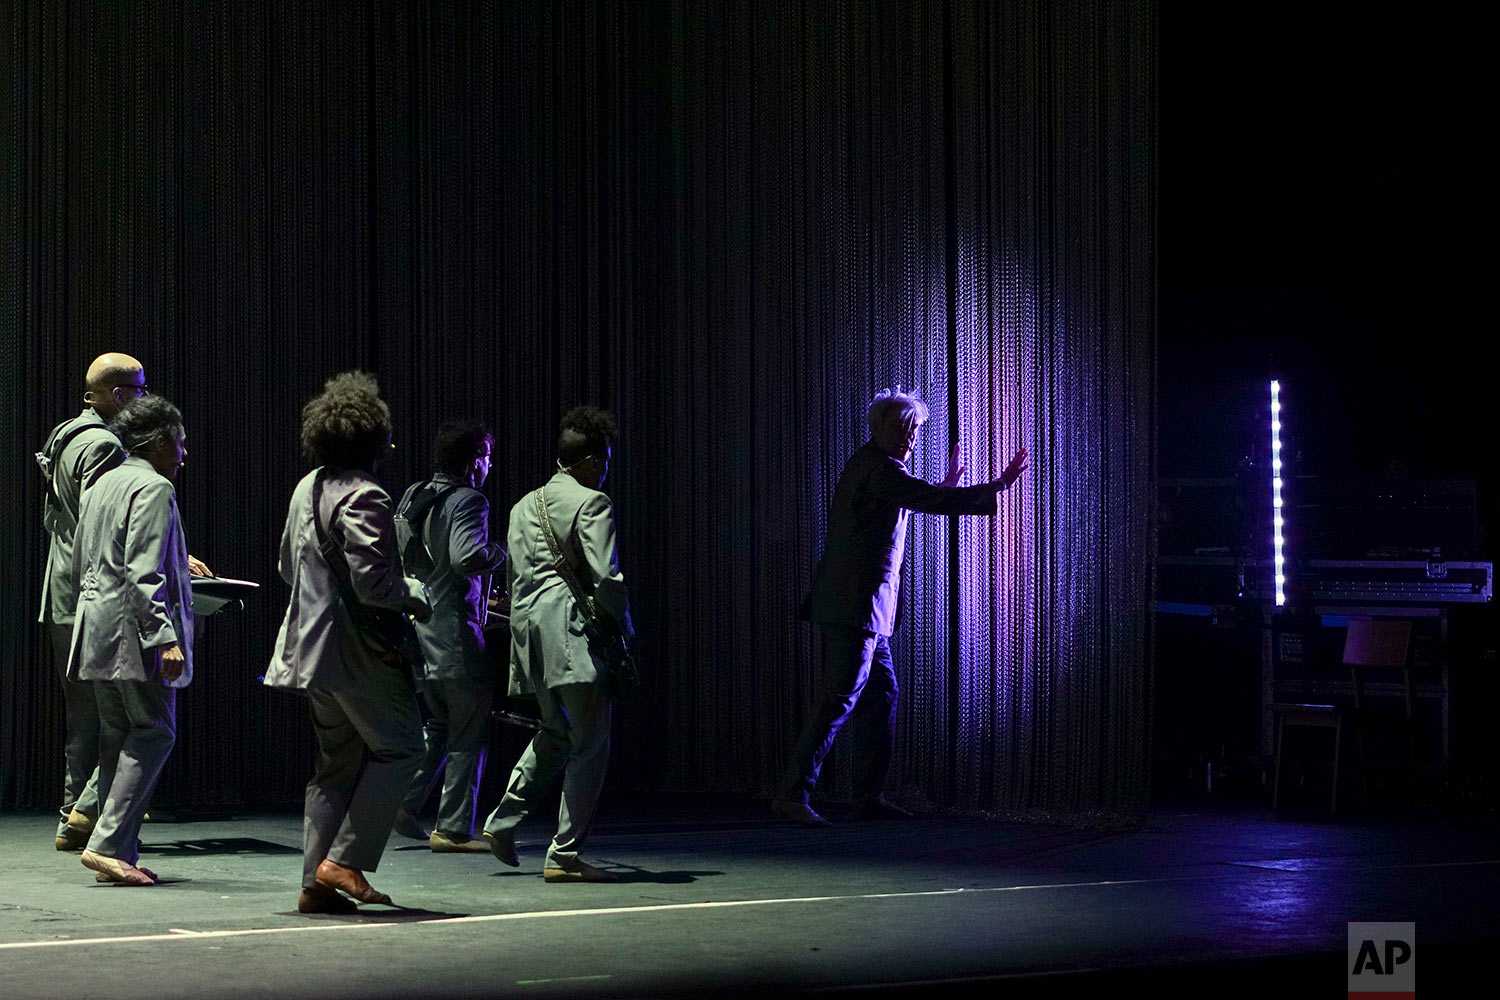 Musician David Byrne presents his latest work 'American Utopia', in Montevideo, Uruguay, March 20, 2018. Byrne's new album, released on March 9, is about the longing people have amid fears and frustrations, he said in a recent interview. (AP Photo/Matilde Campodonico)